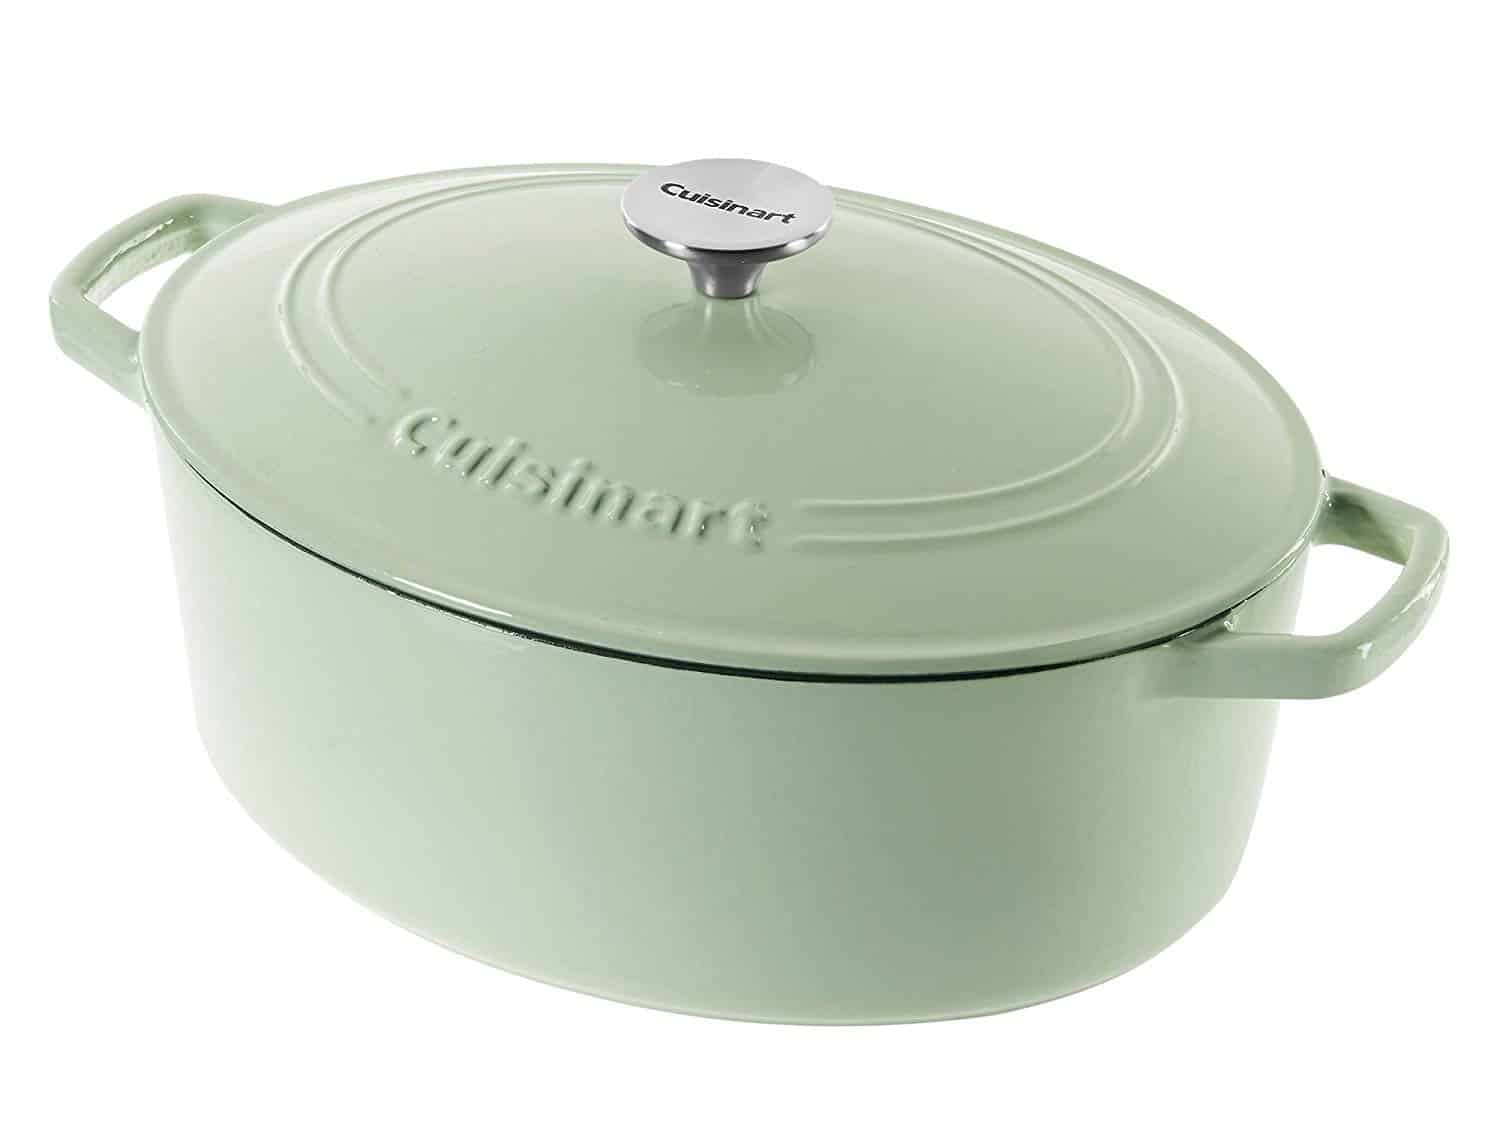 Save up to 46% on Cuisinart Cast Iron Cookware - Amazon